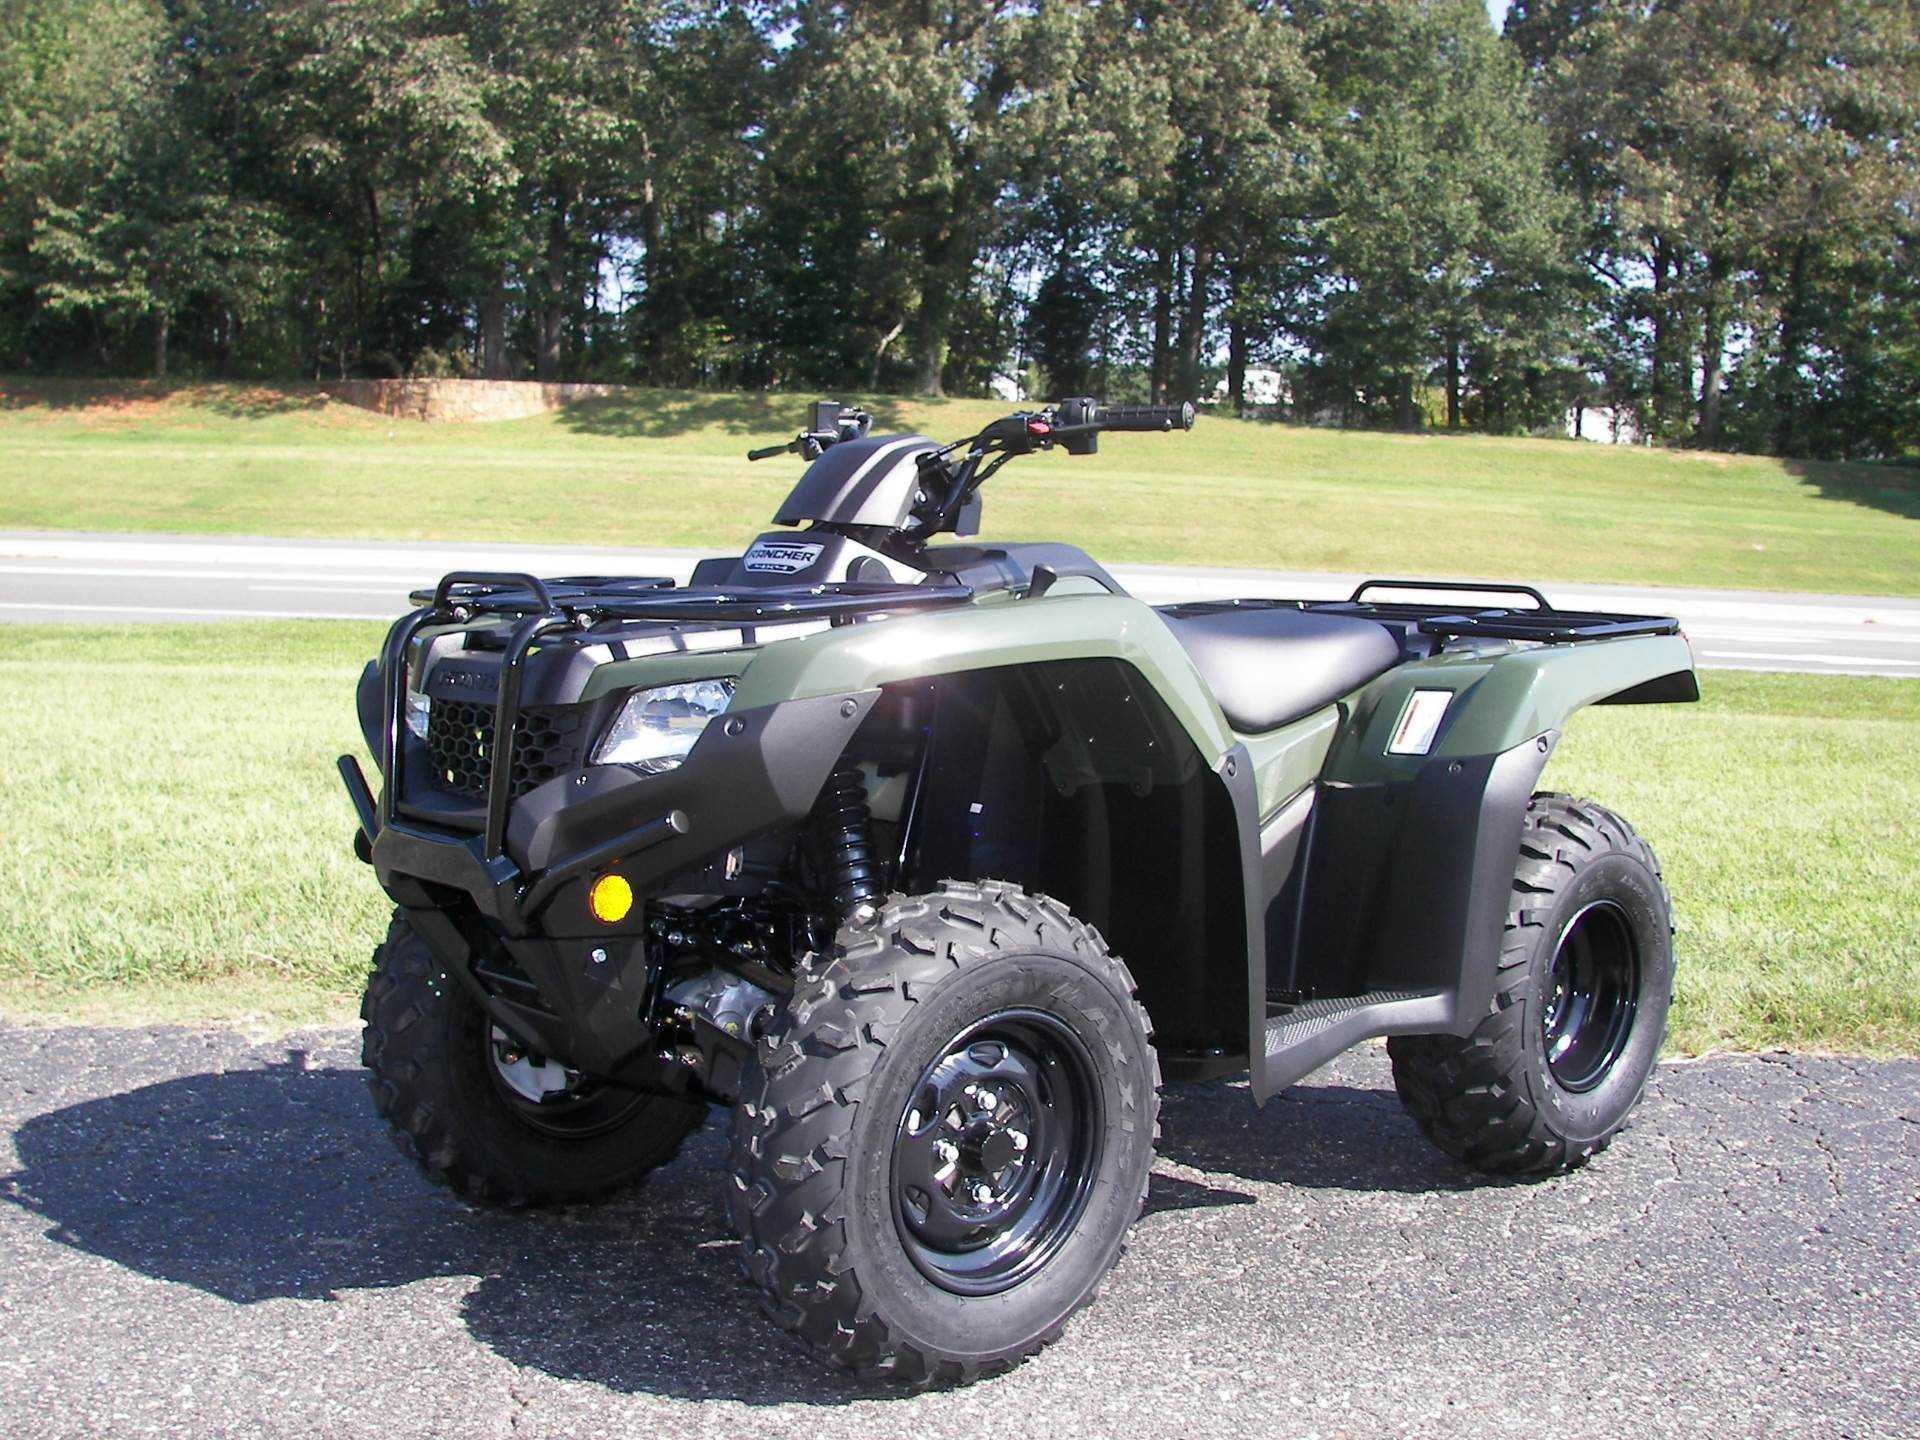 2019 Honda FourTrax Rancher 4x4 in Shelby, North Carolina - Photo 3